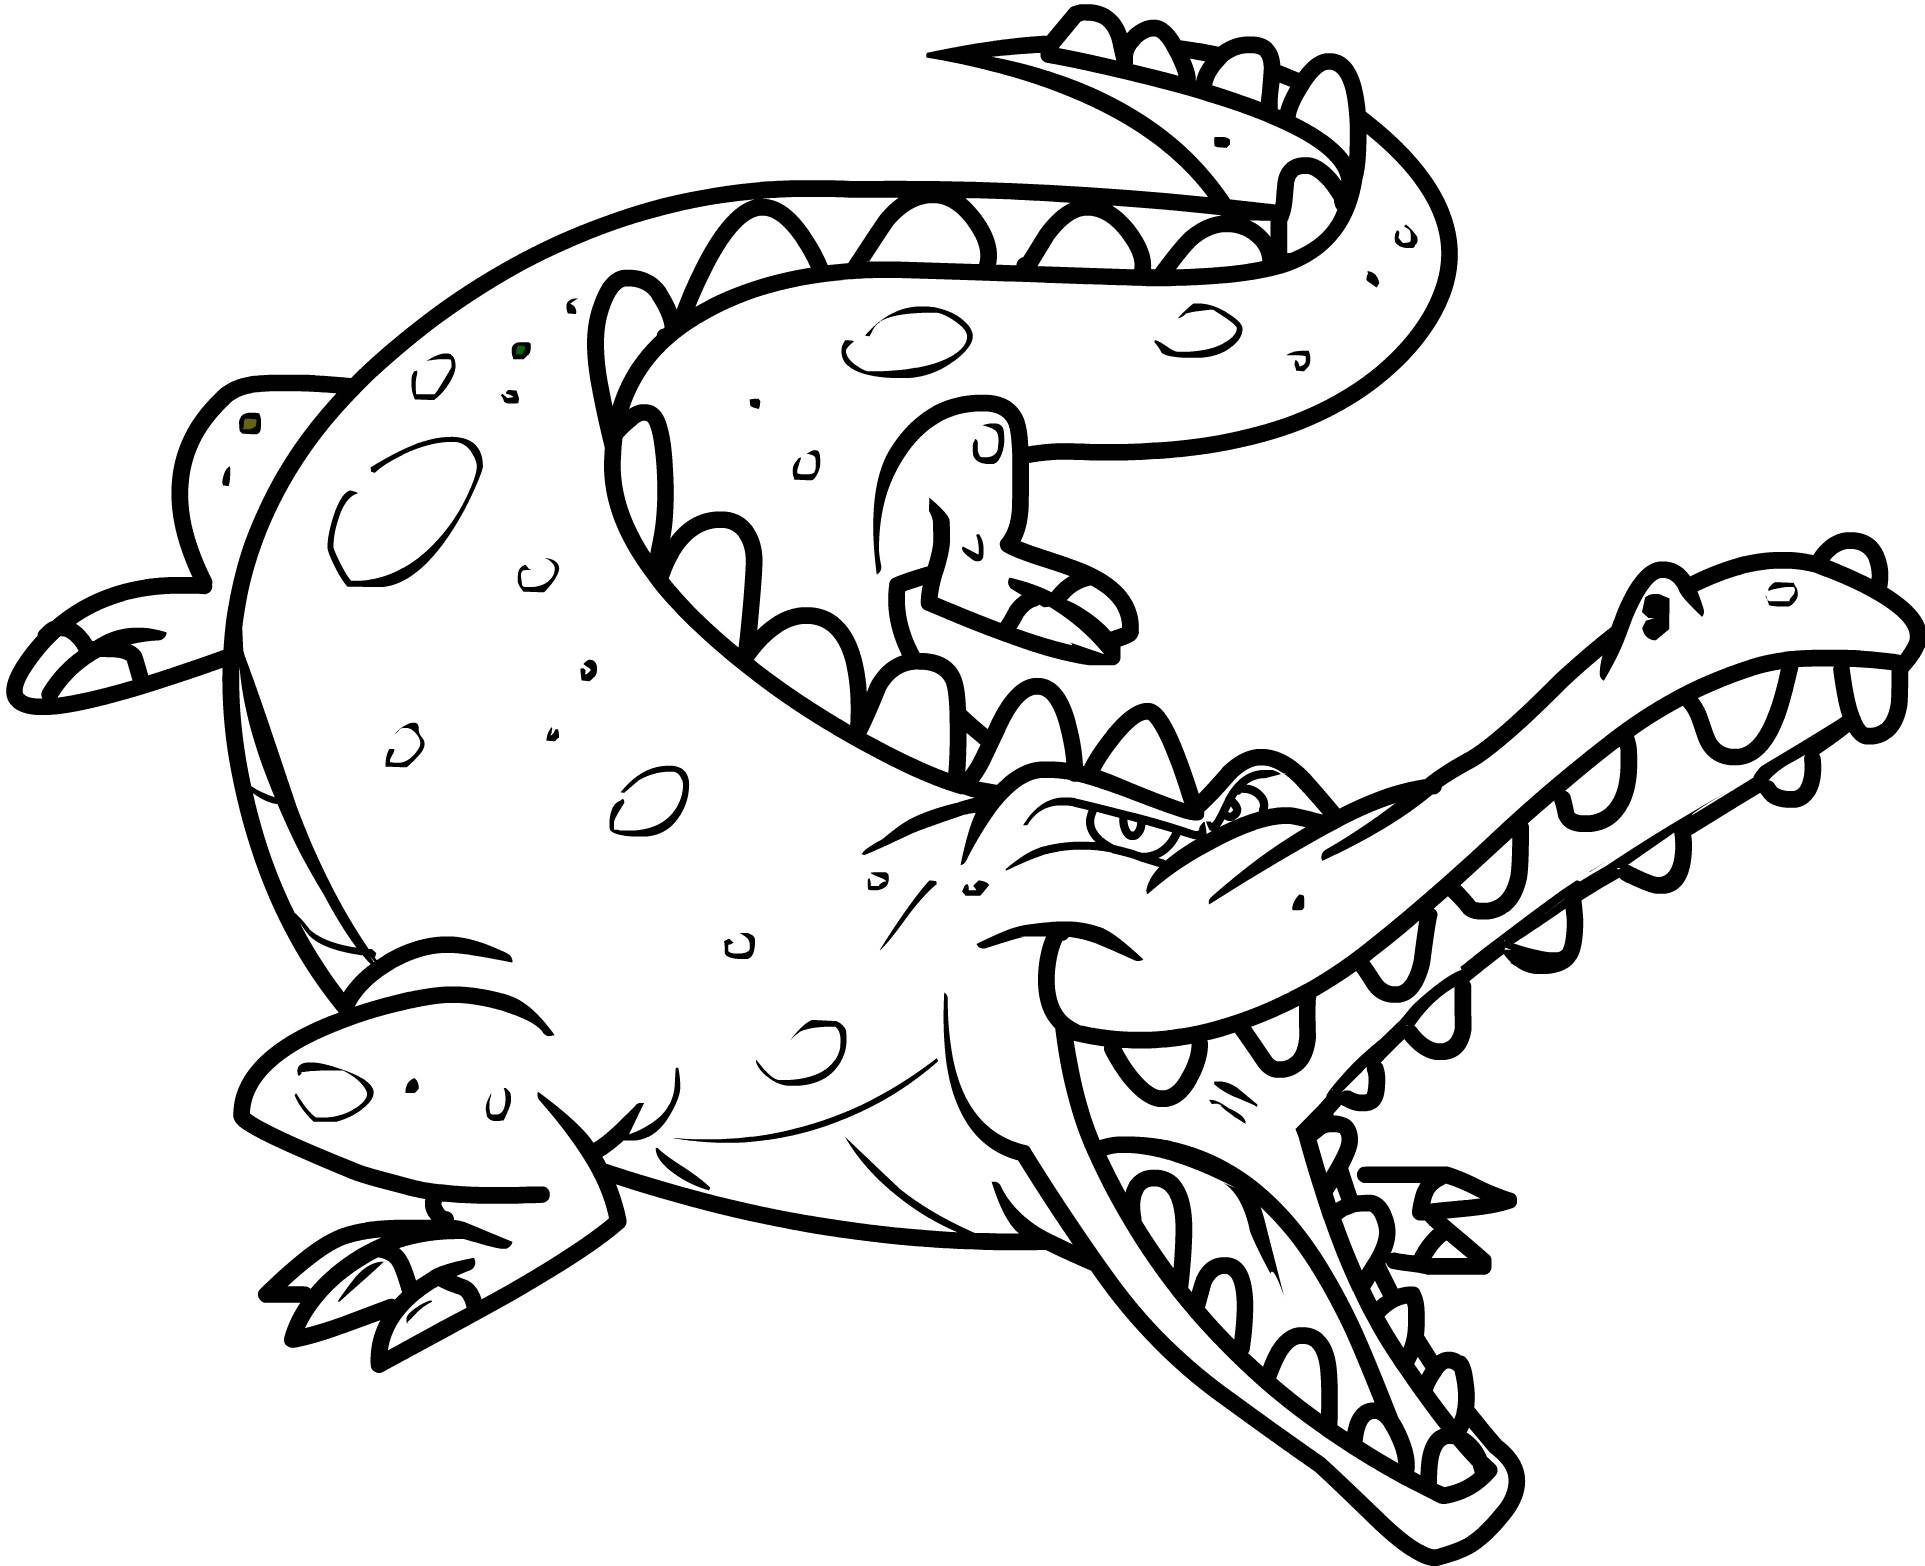 coloring pages for reptiles alligators - photo#26